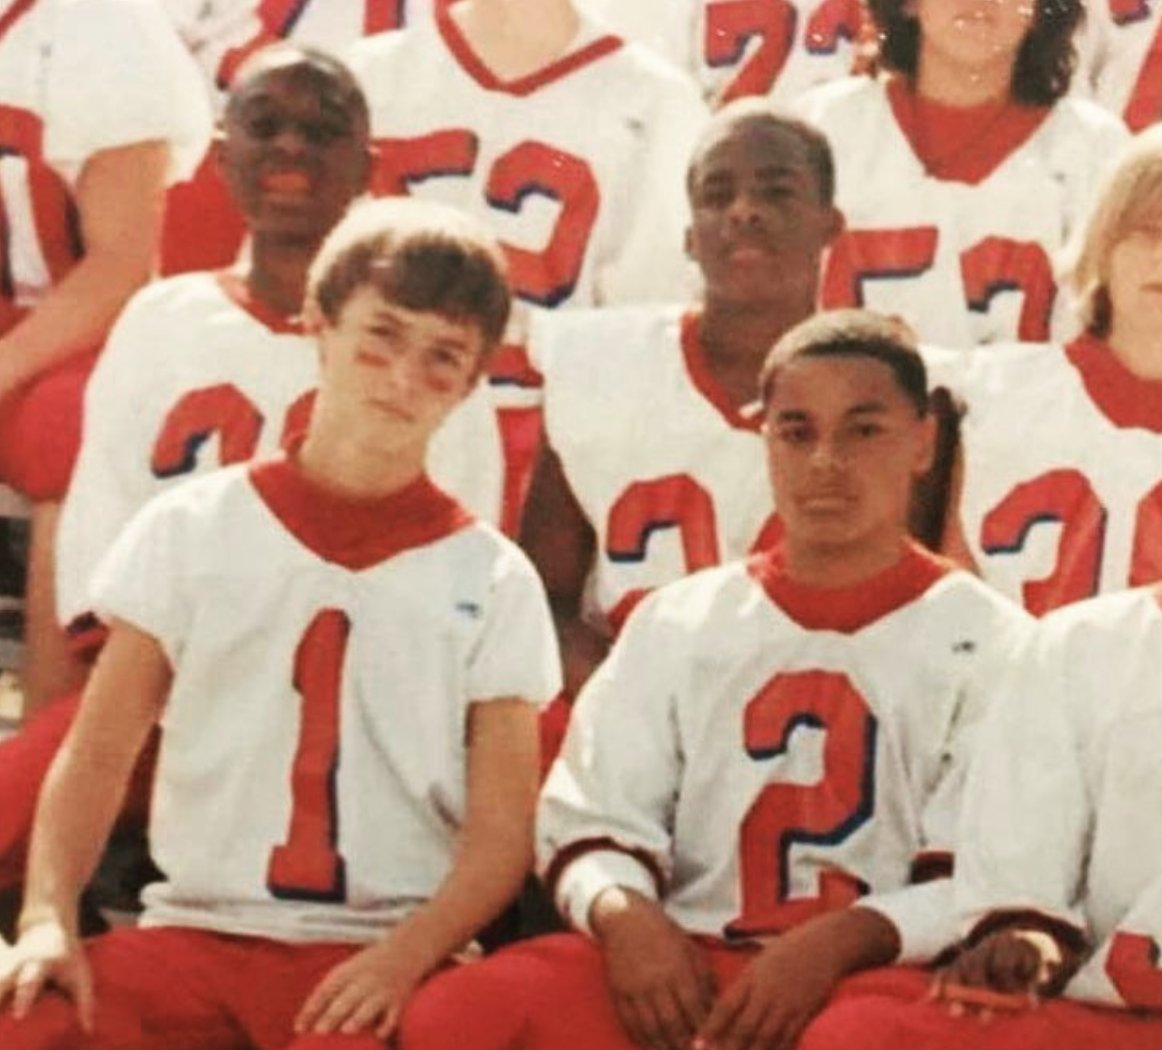 Dak in the day. #TBT https://t.co/d46fczg2j2